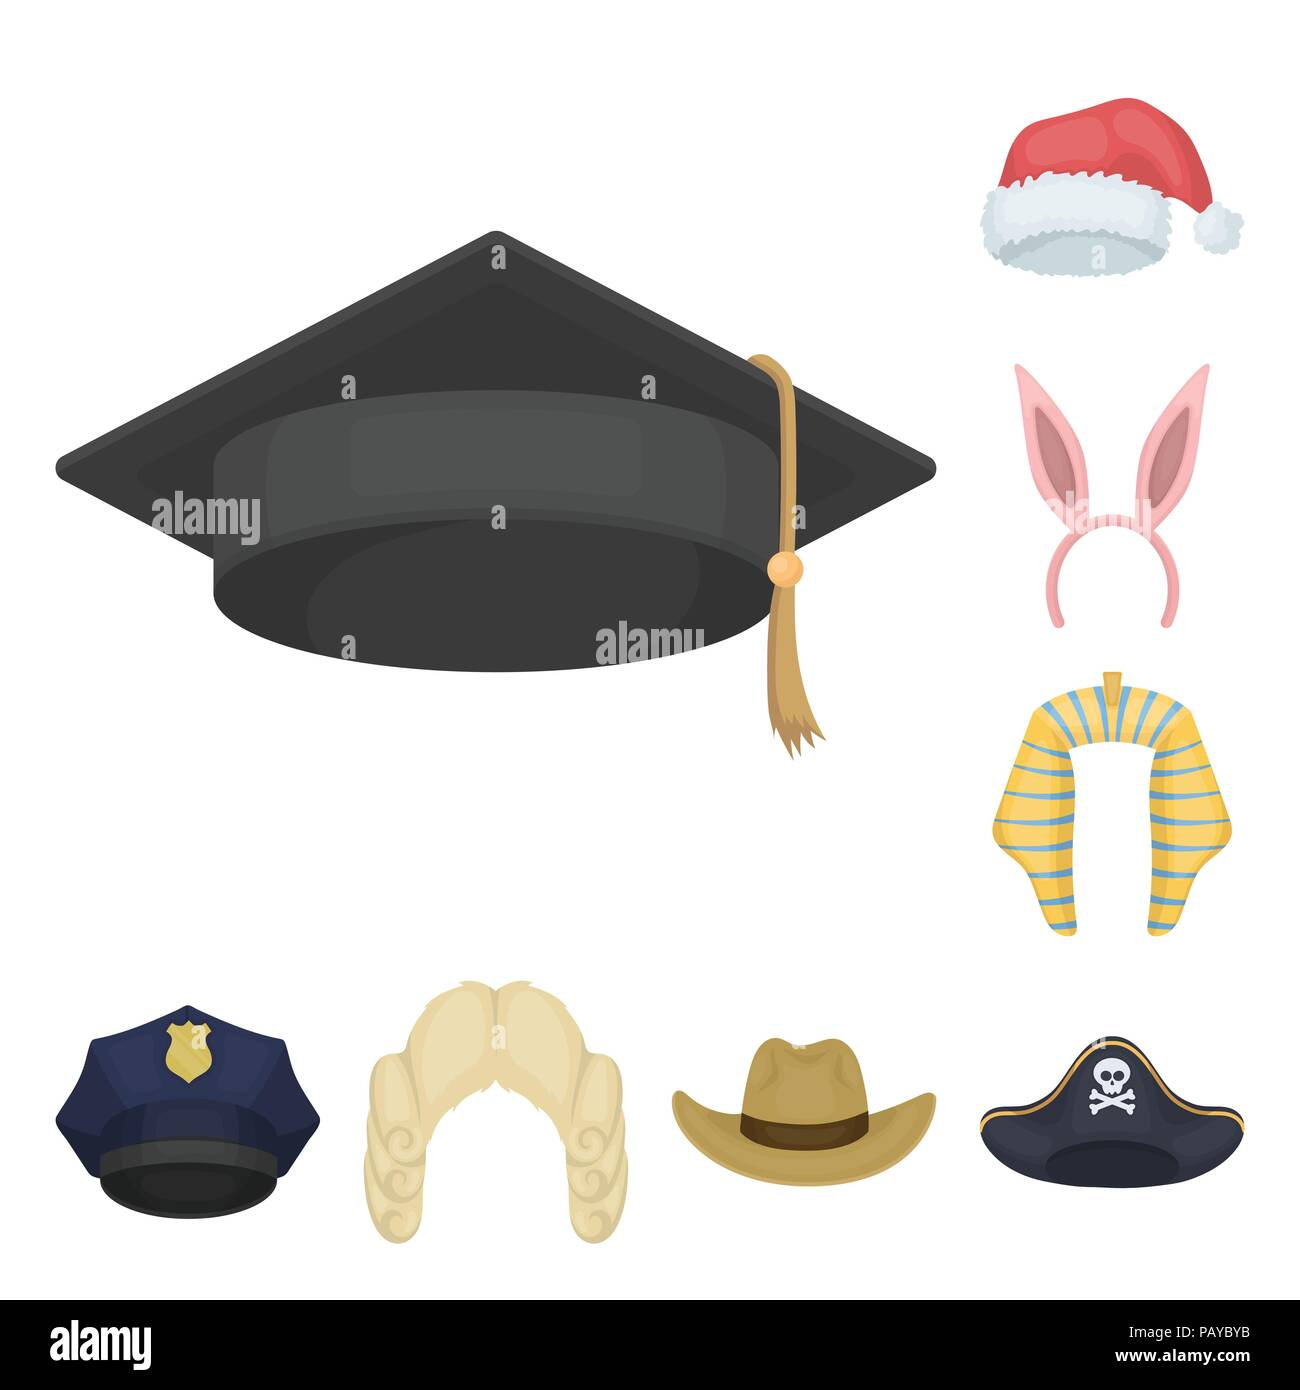 6fcf7872b5533 Different kinds of hats cartoon icons in set collection for  design.Headdress vector symbol stock illustration.